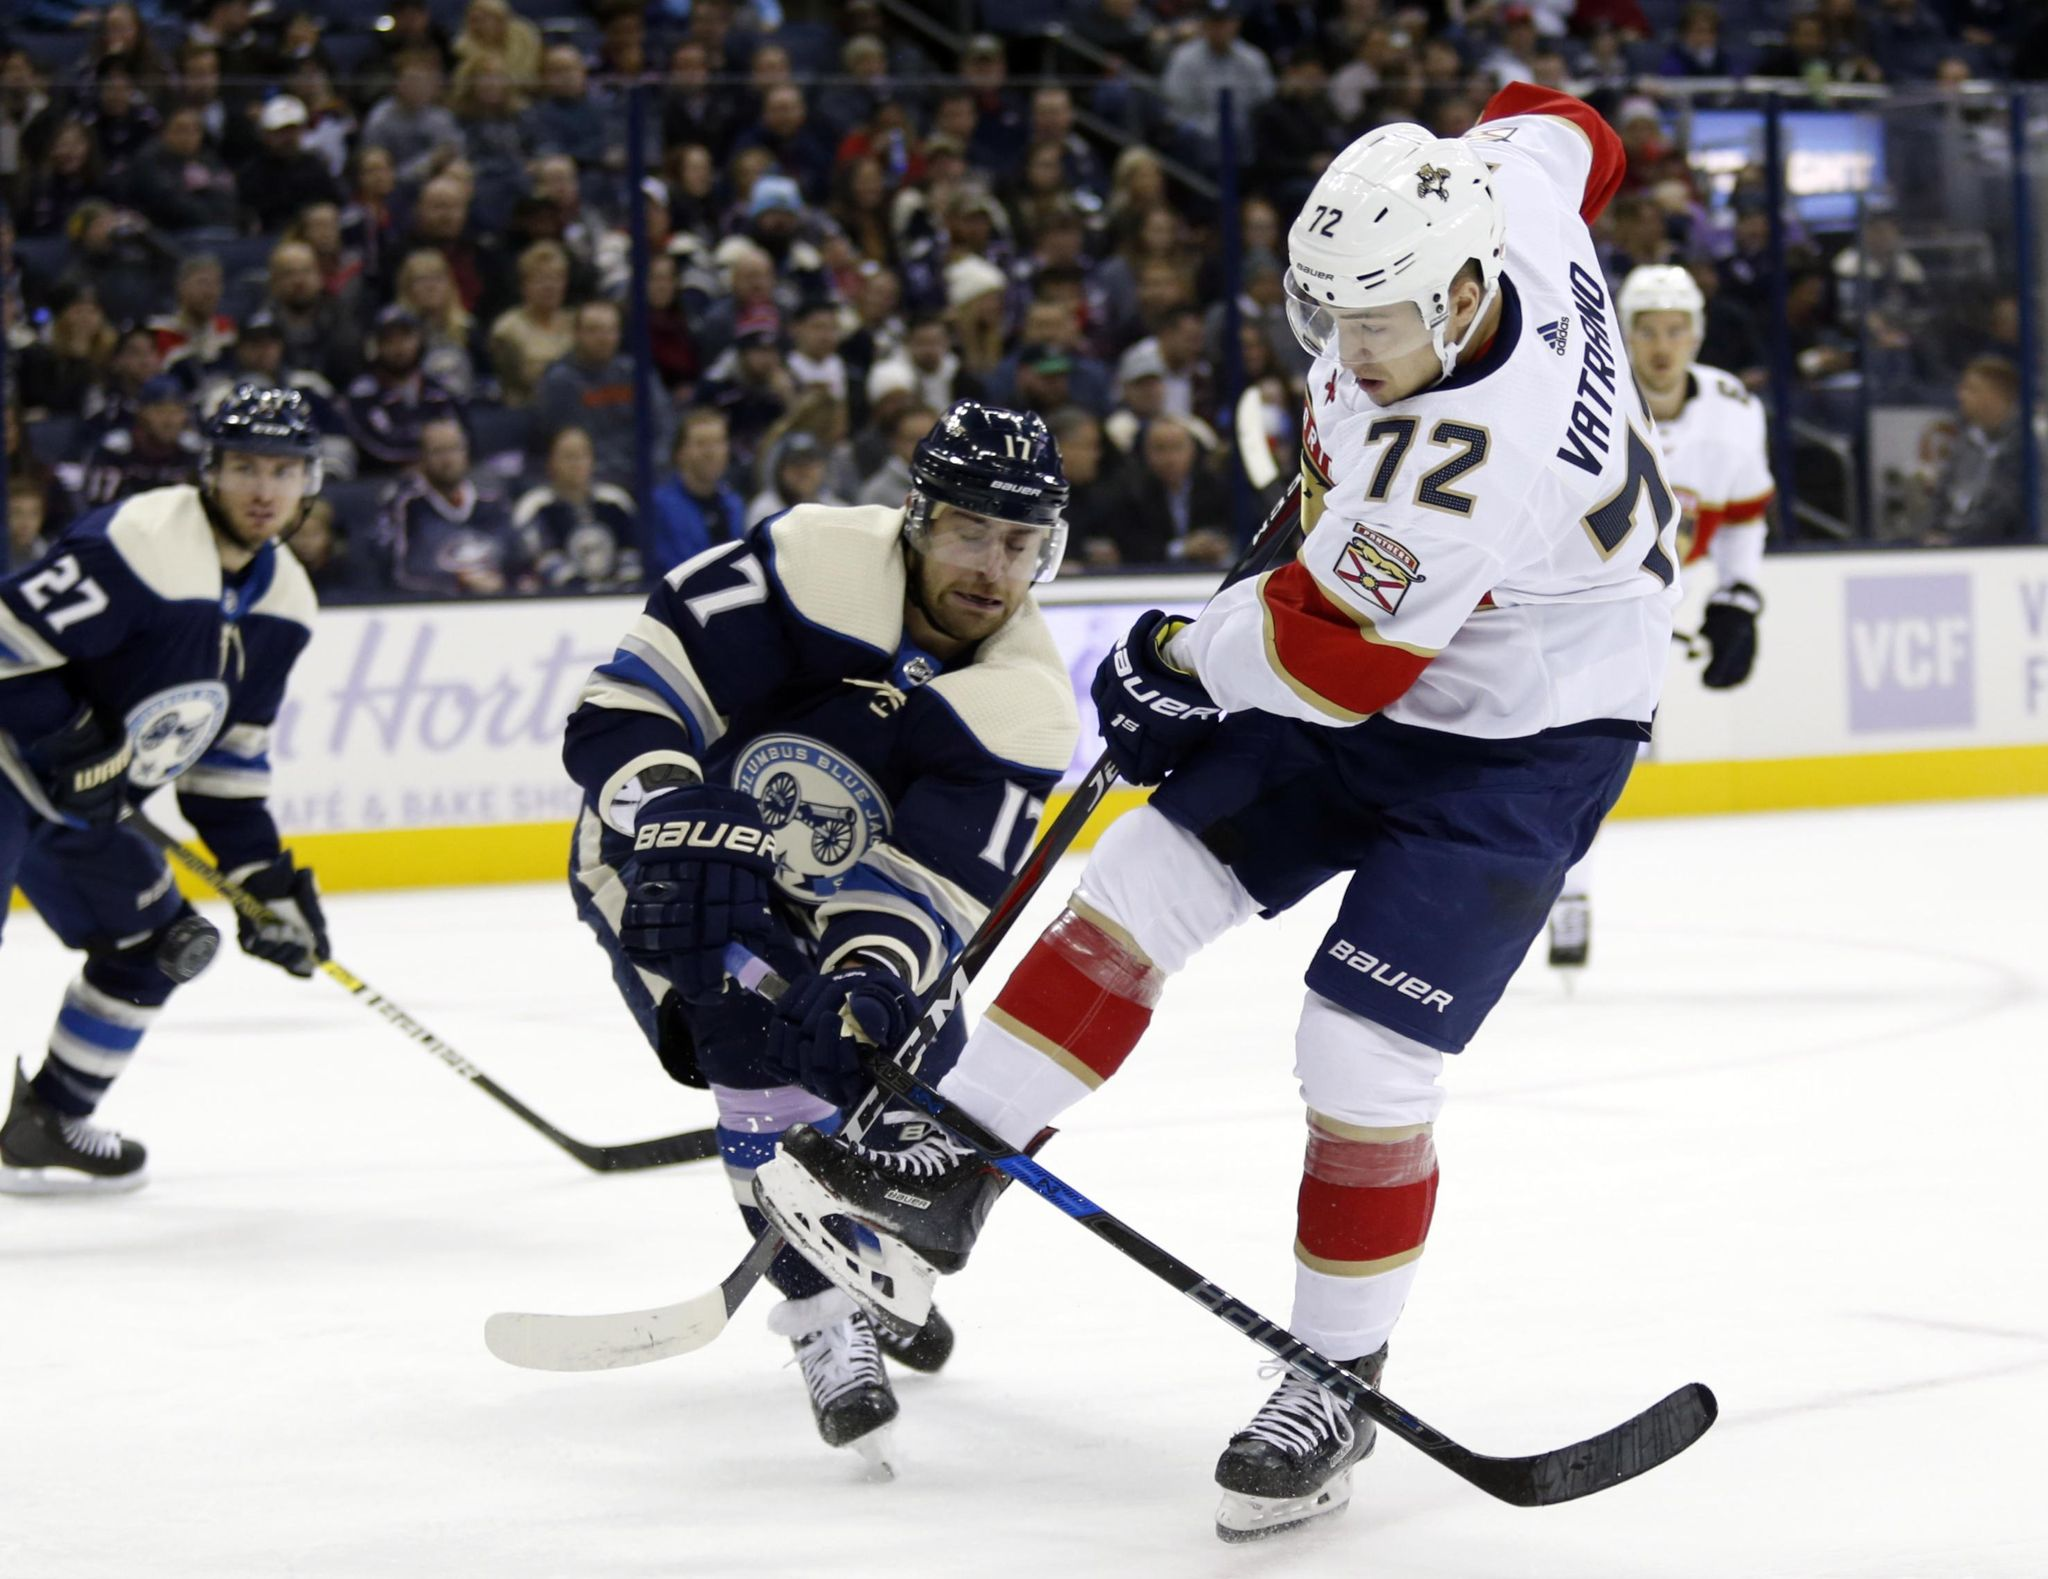 Panthers_blue_jackets_hockey_96991_s2048x1579